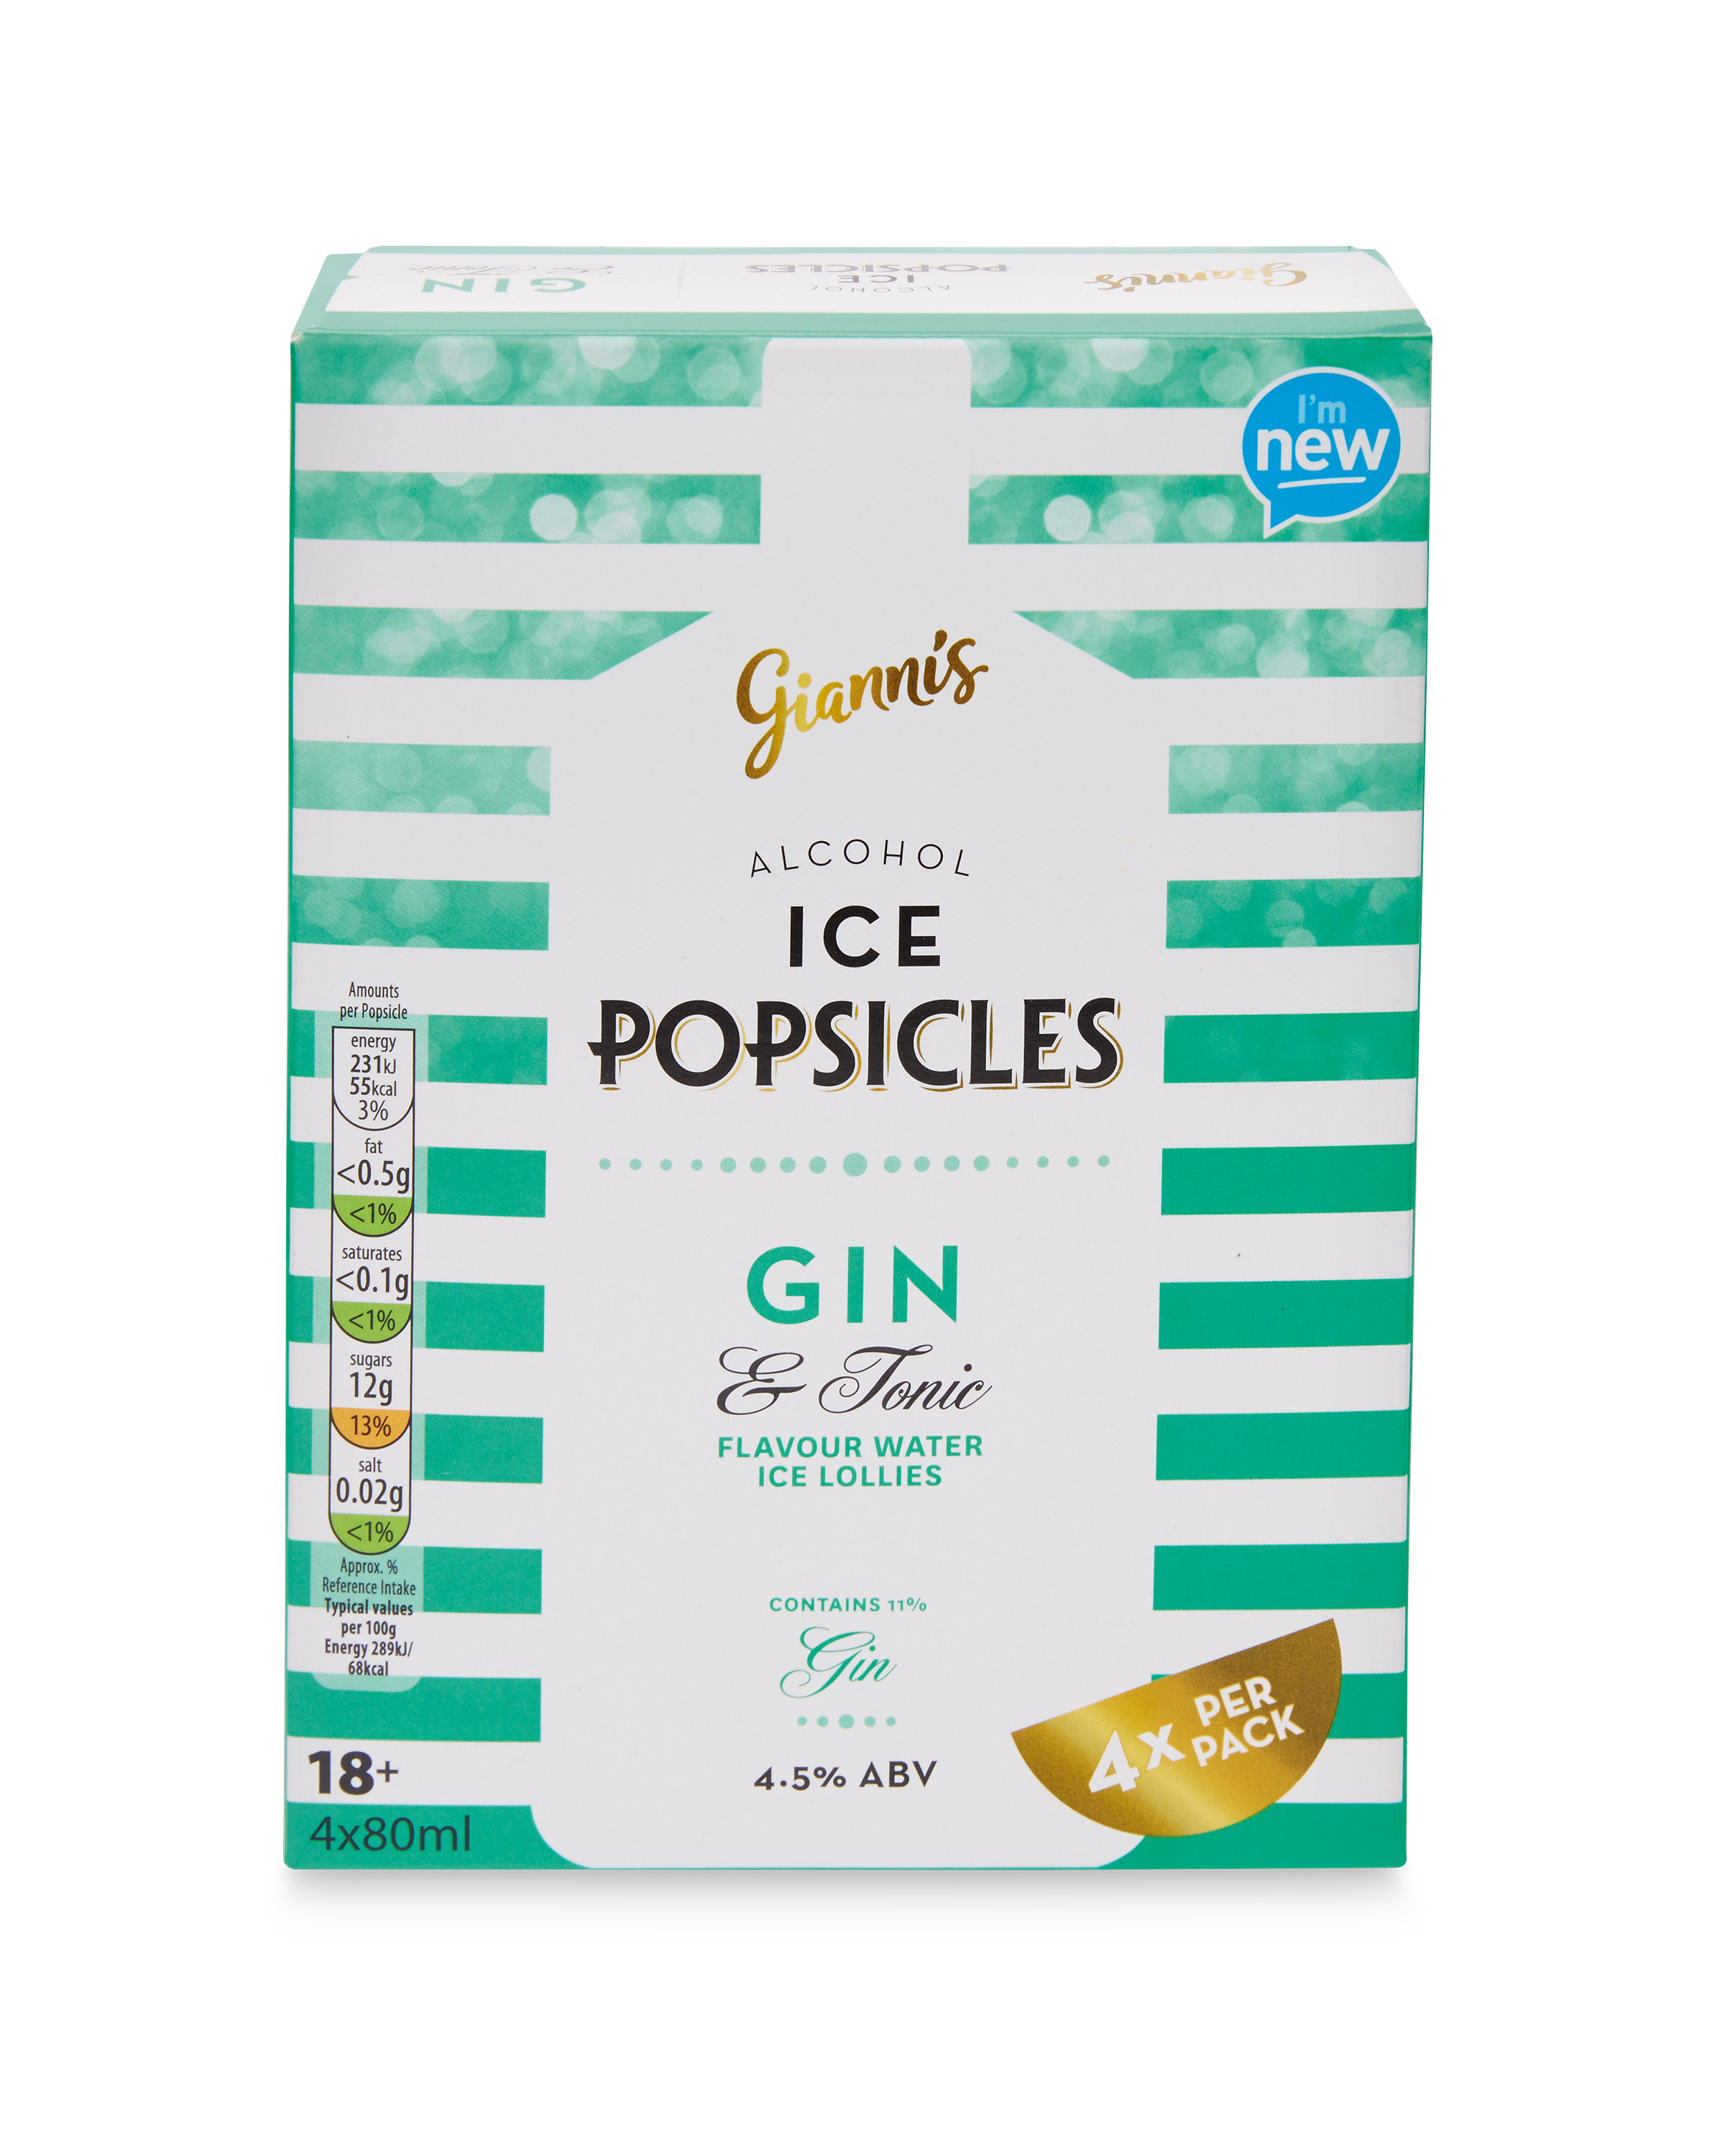 Gin-&-Tonic-Popsicle